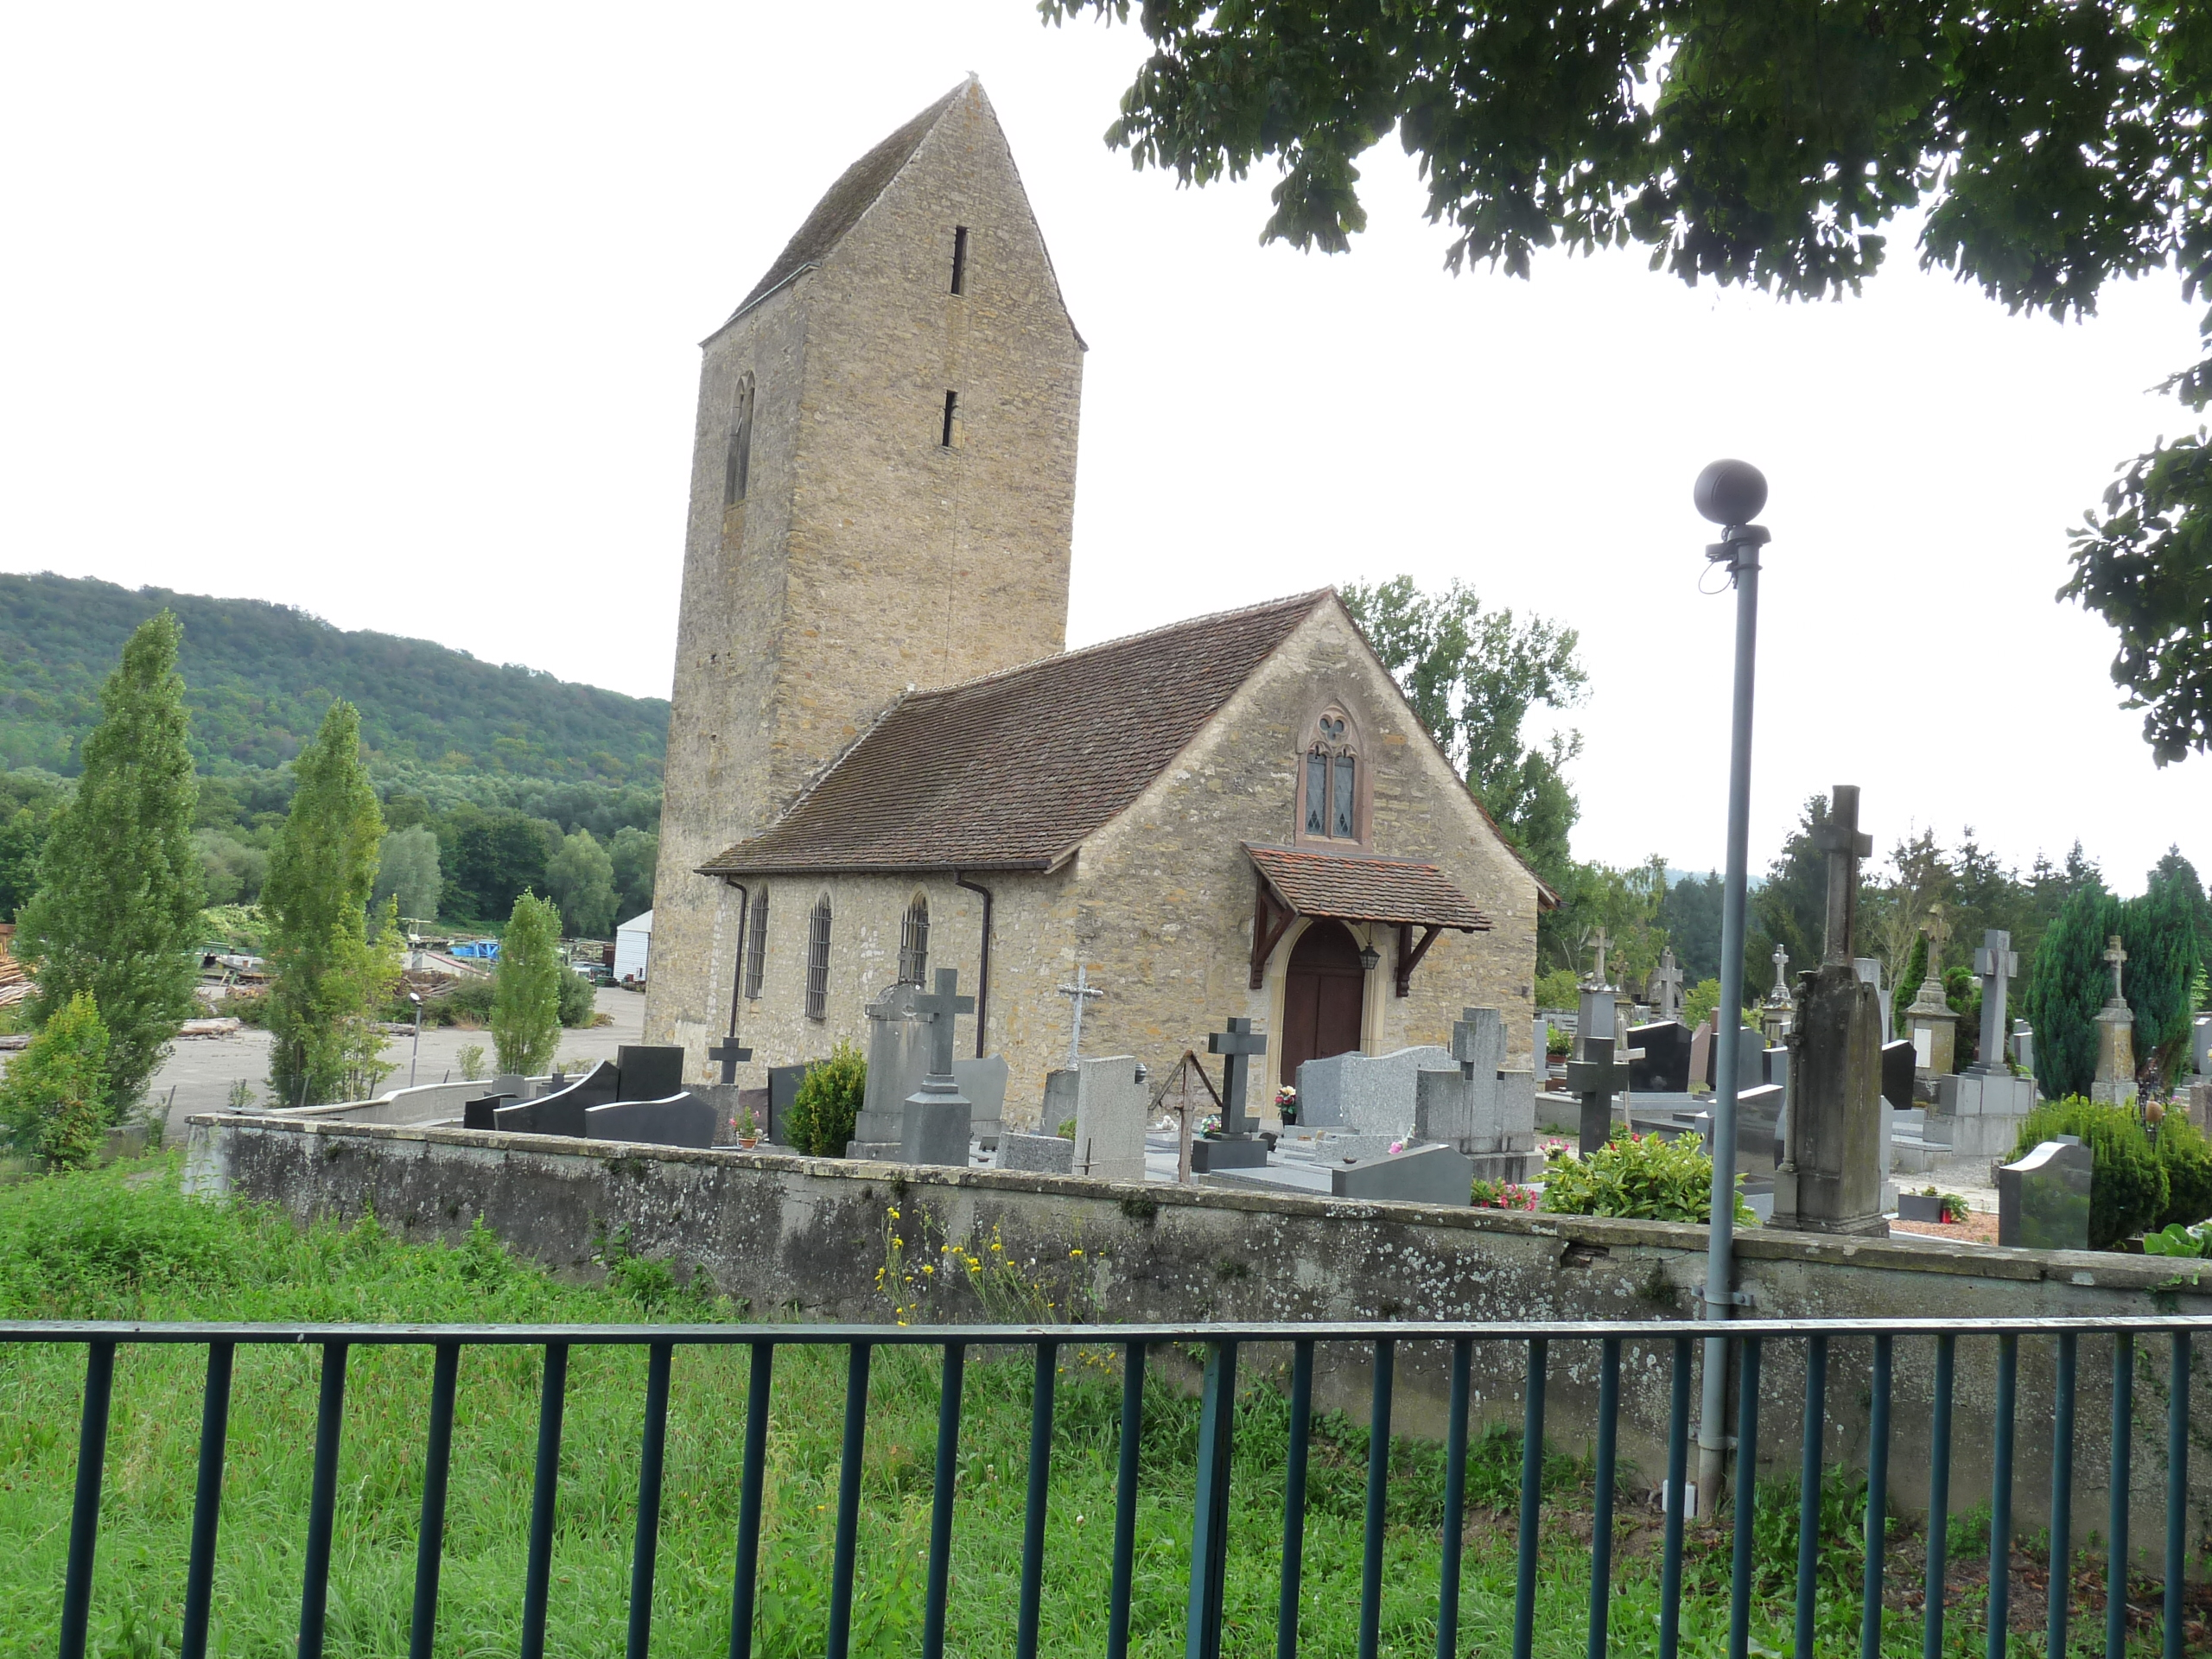 CHAPELLE BURNKIRCH À ILLFURTH